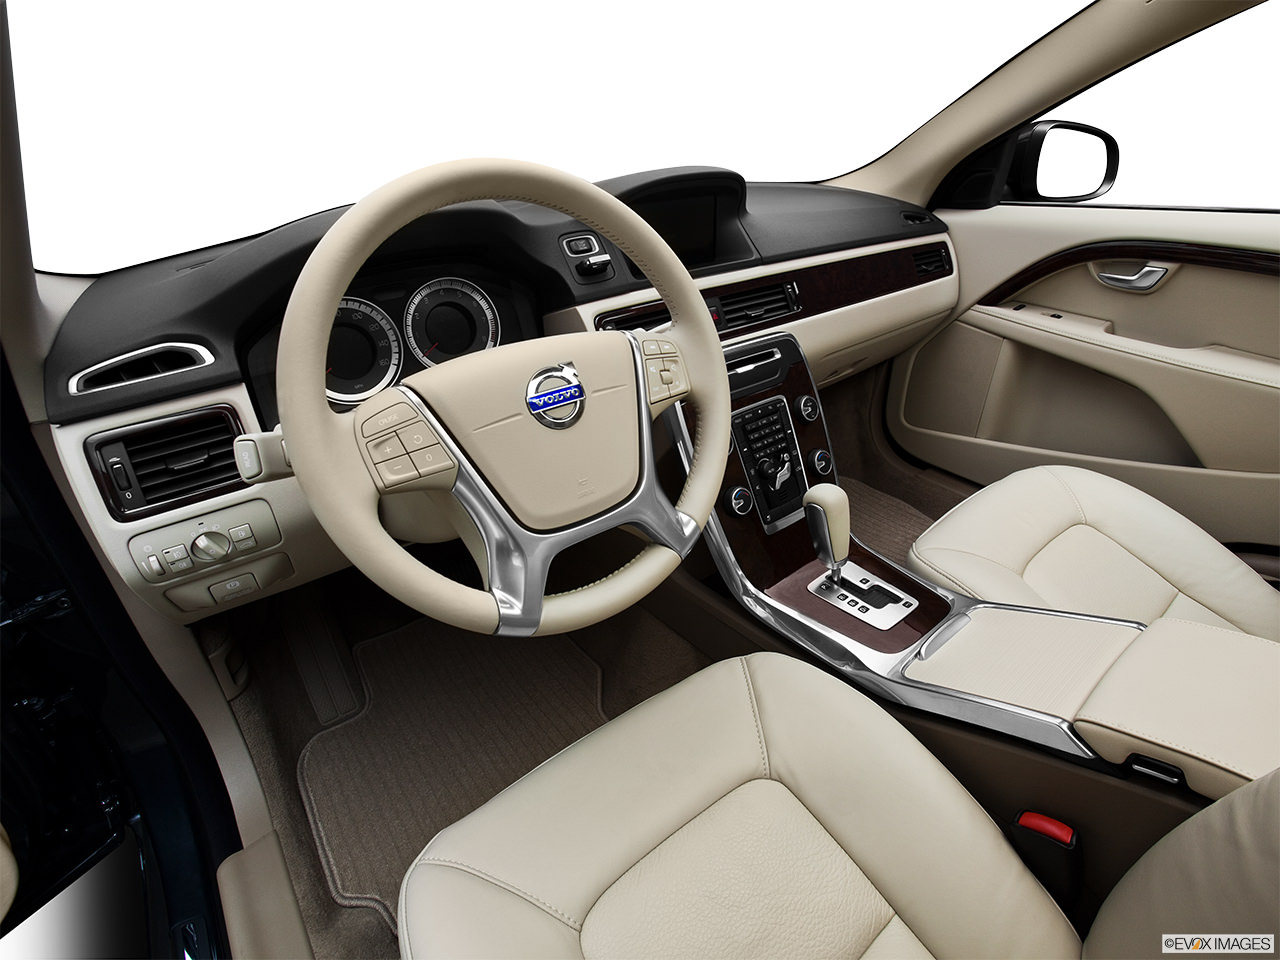 a buyer s guide to the 2012 volvo s80 yourmechanic advice rh yourmechanic com 2012 Volvo S60 2006 Volvo S80